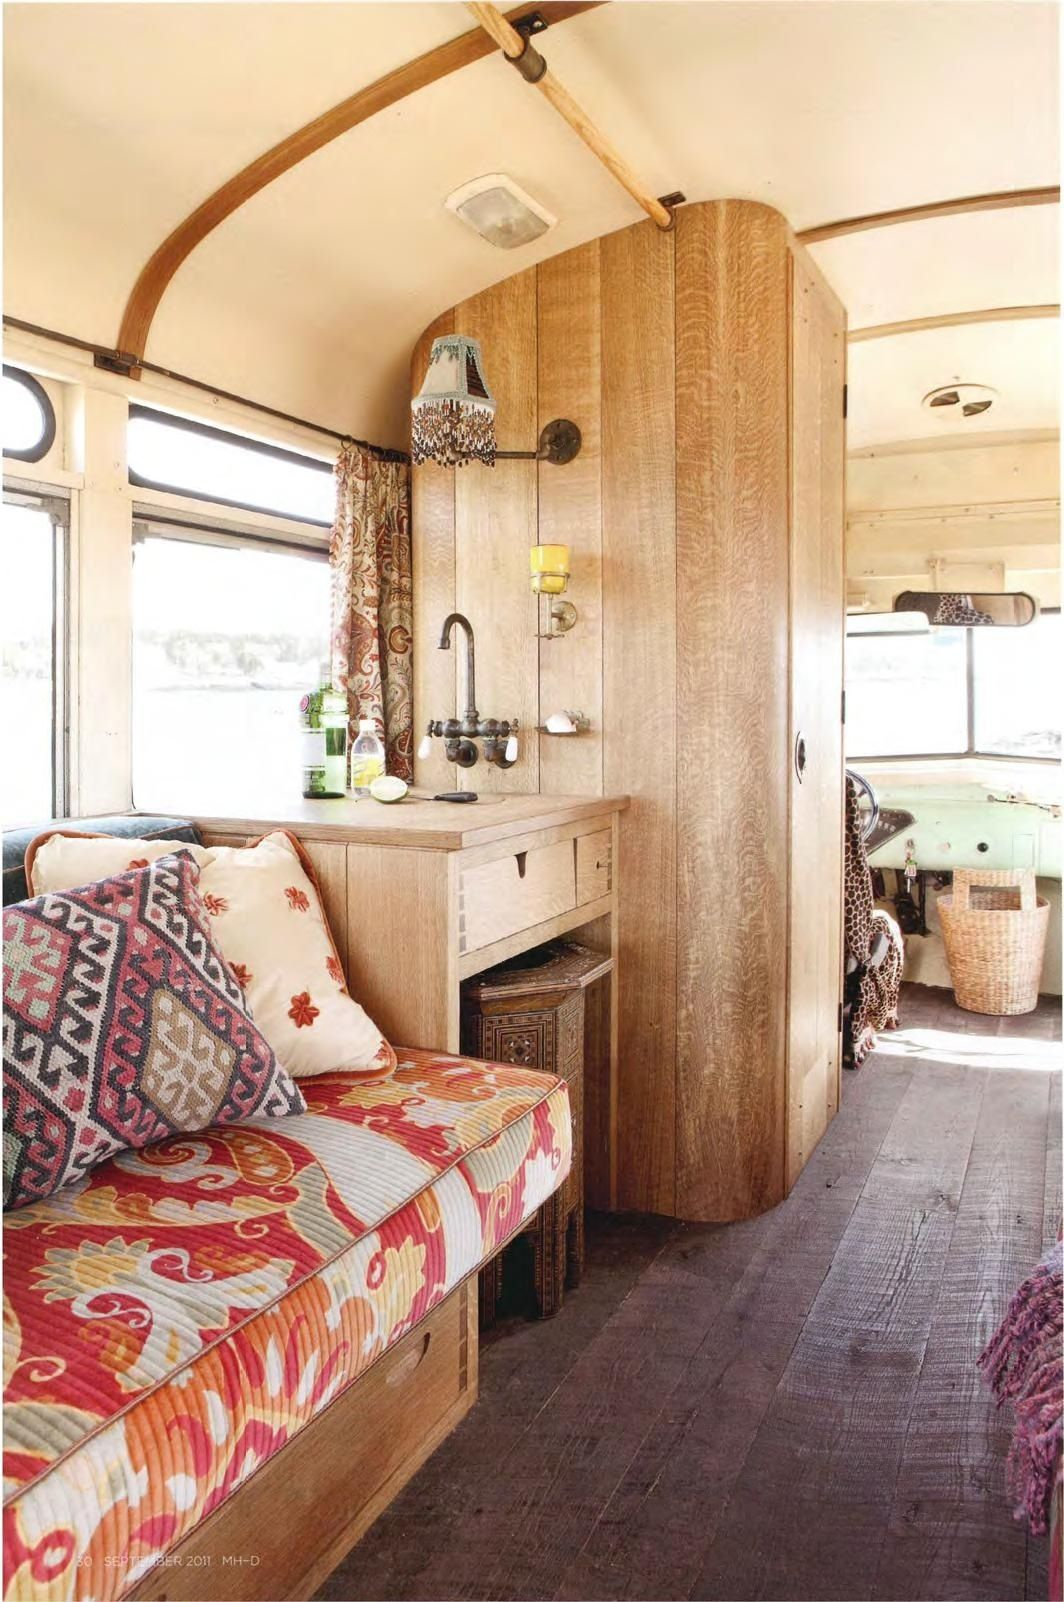 27 Dreamy Campers That Will Make You Want To Drop Everything For The